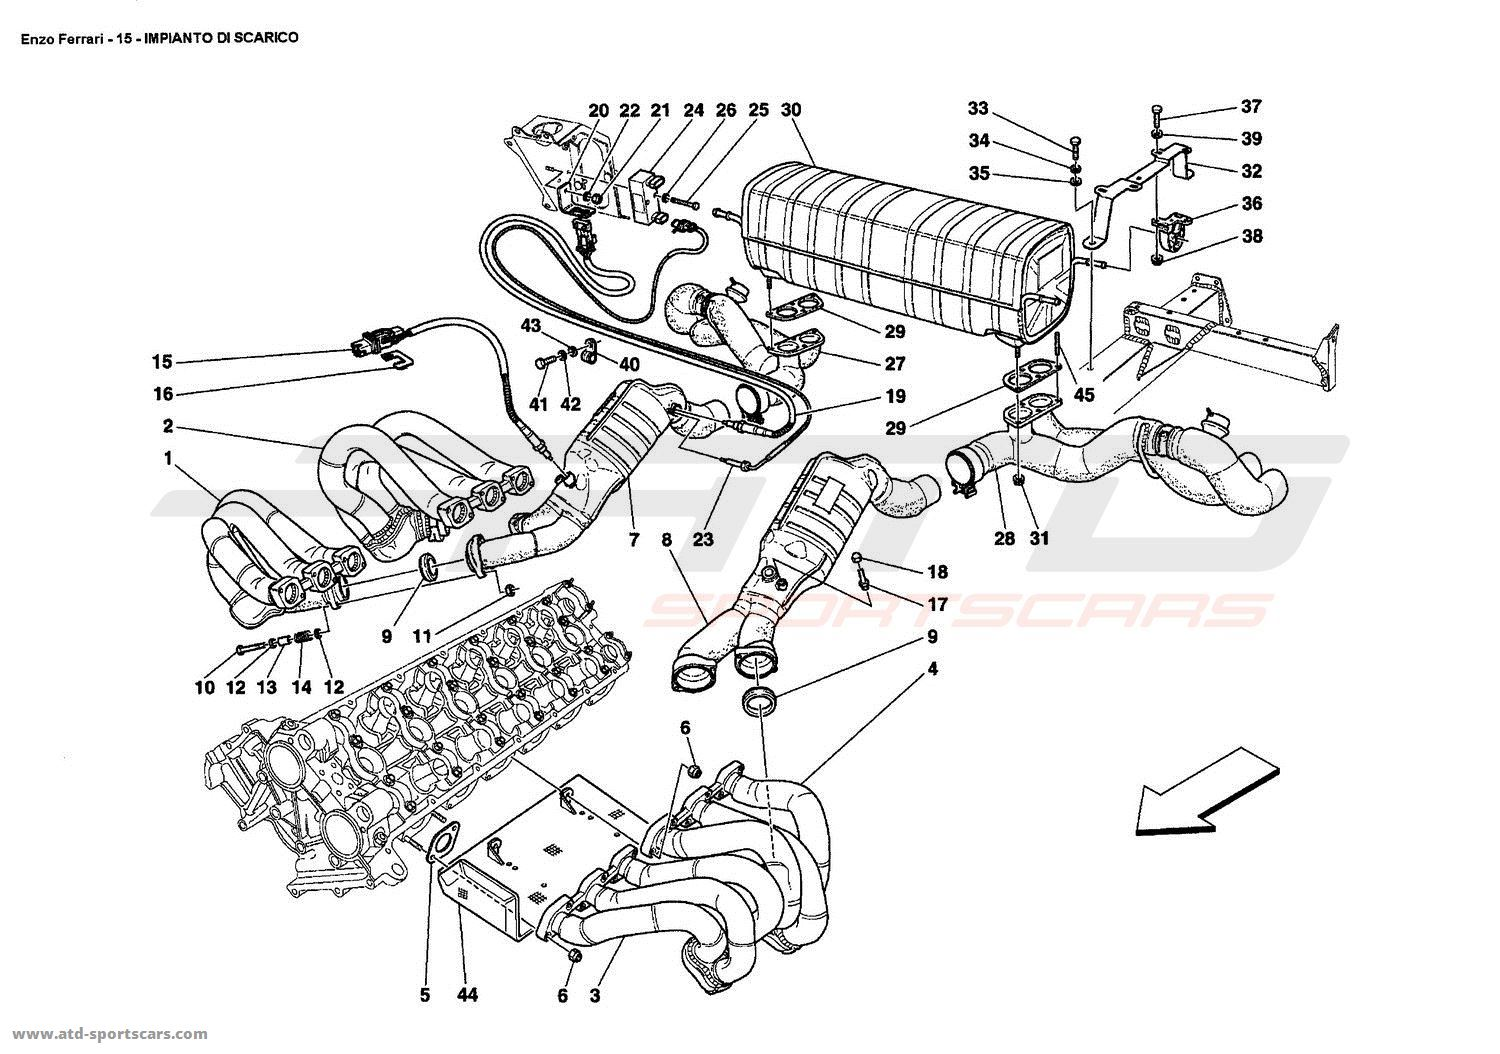 Ferrari Enzo EXHAUST SYSTEM 2 parts at ATD-Sportscars